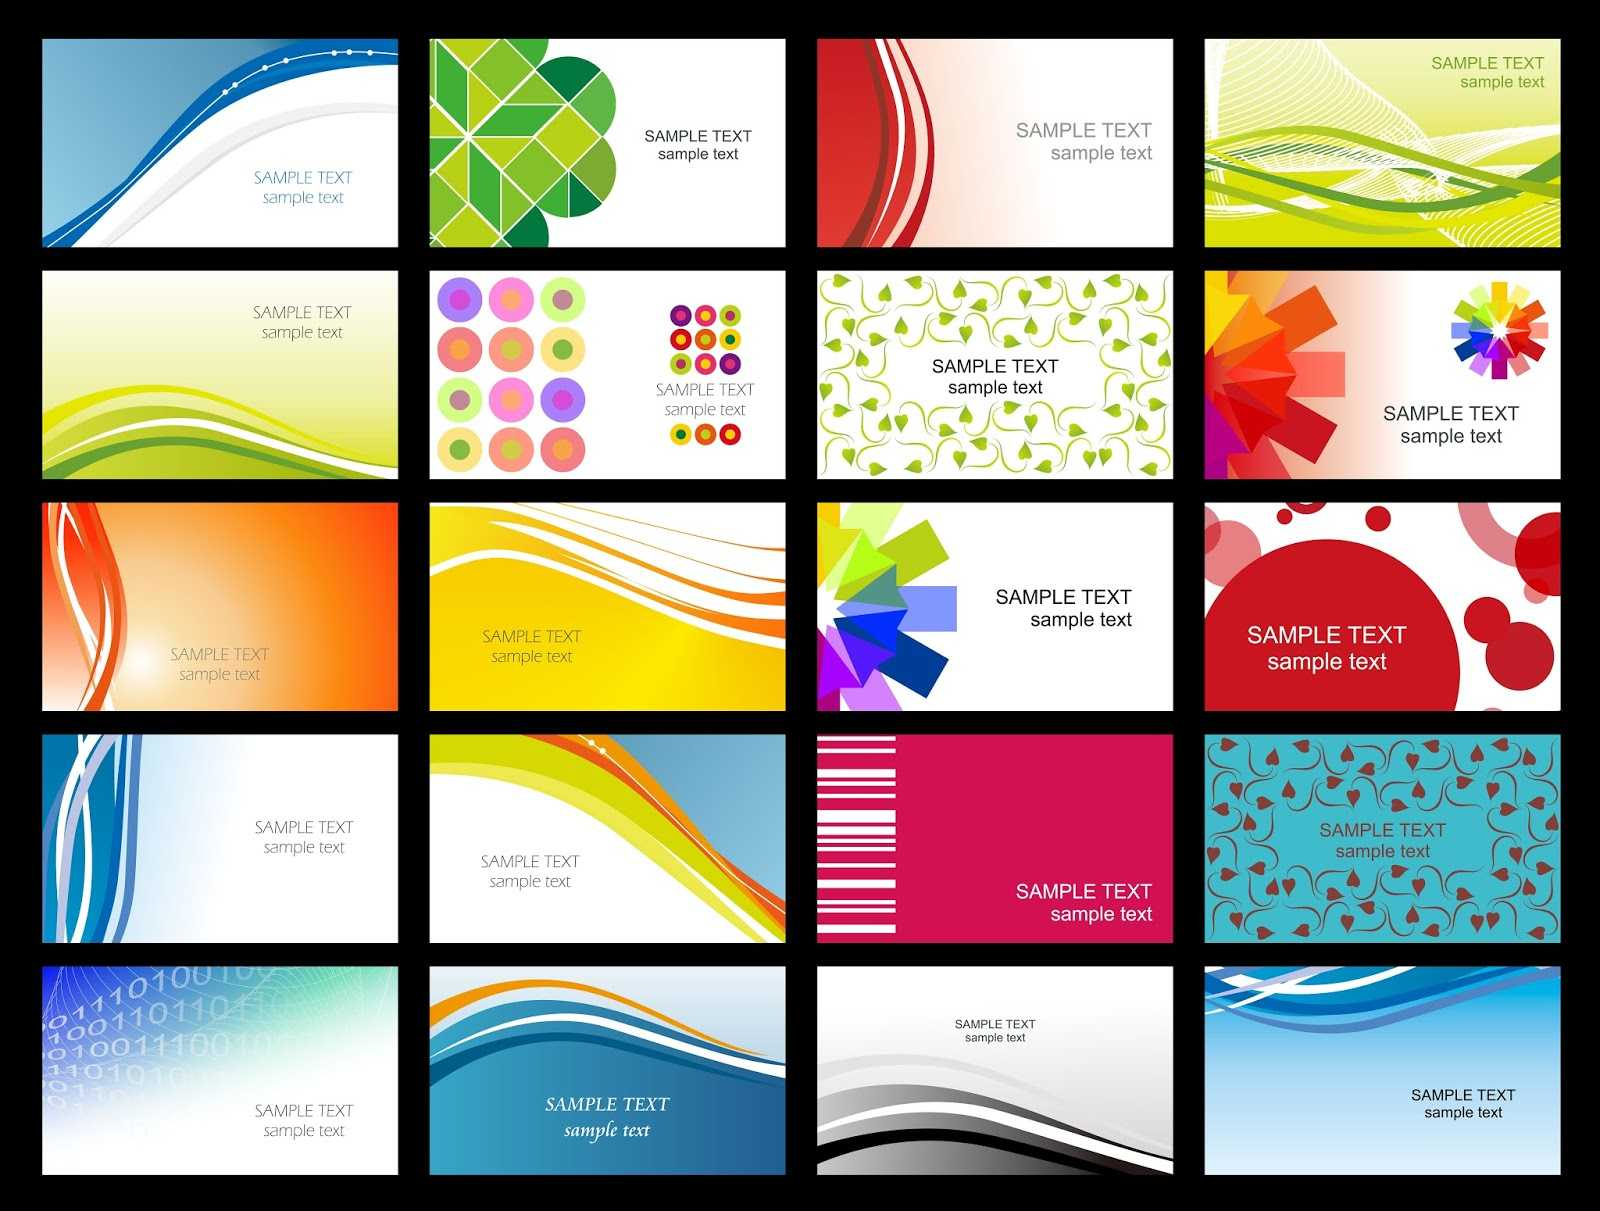 Printable Business Card Template - Business Card Tips With Regard To Blank Business Card Template Download